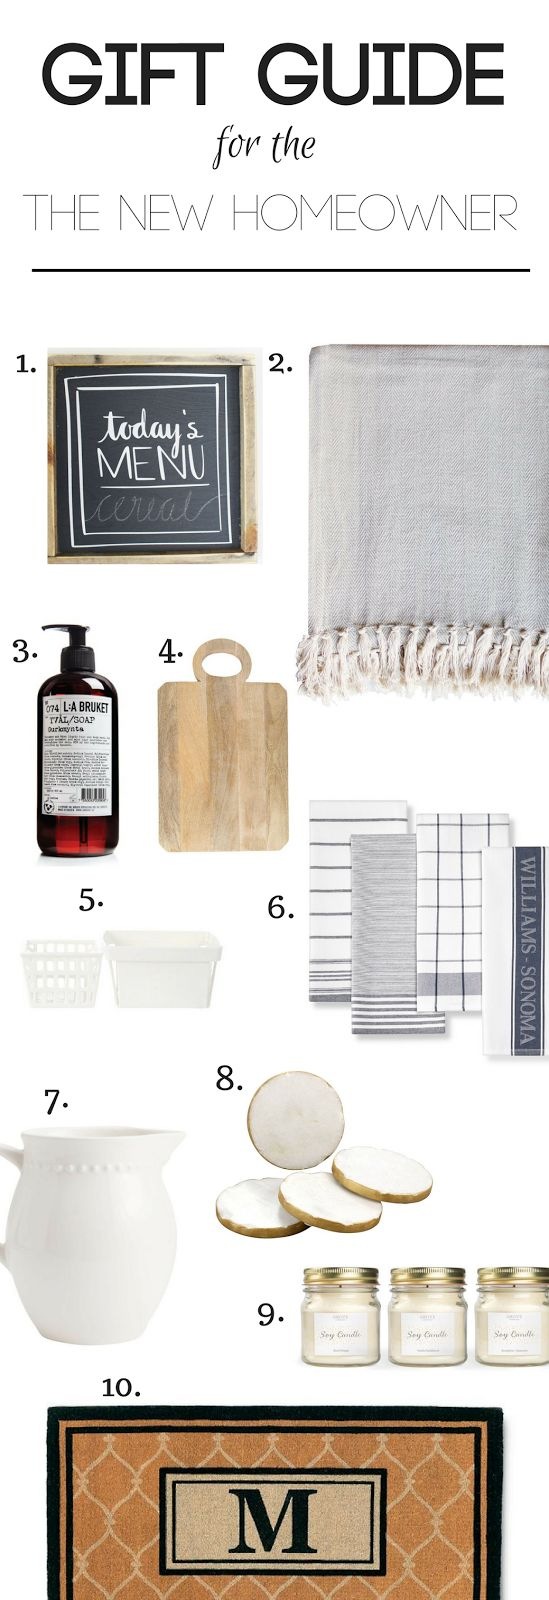 New homeowners are always so excited to receive gifts for their new home. The holiday season is a perfect time to give those gifts.    Gift Guide for the New Homeowner, Christmas Ultimate gift guide, gift list, gift guide, ultimate gift guide, adult gift guide, housewarming gift